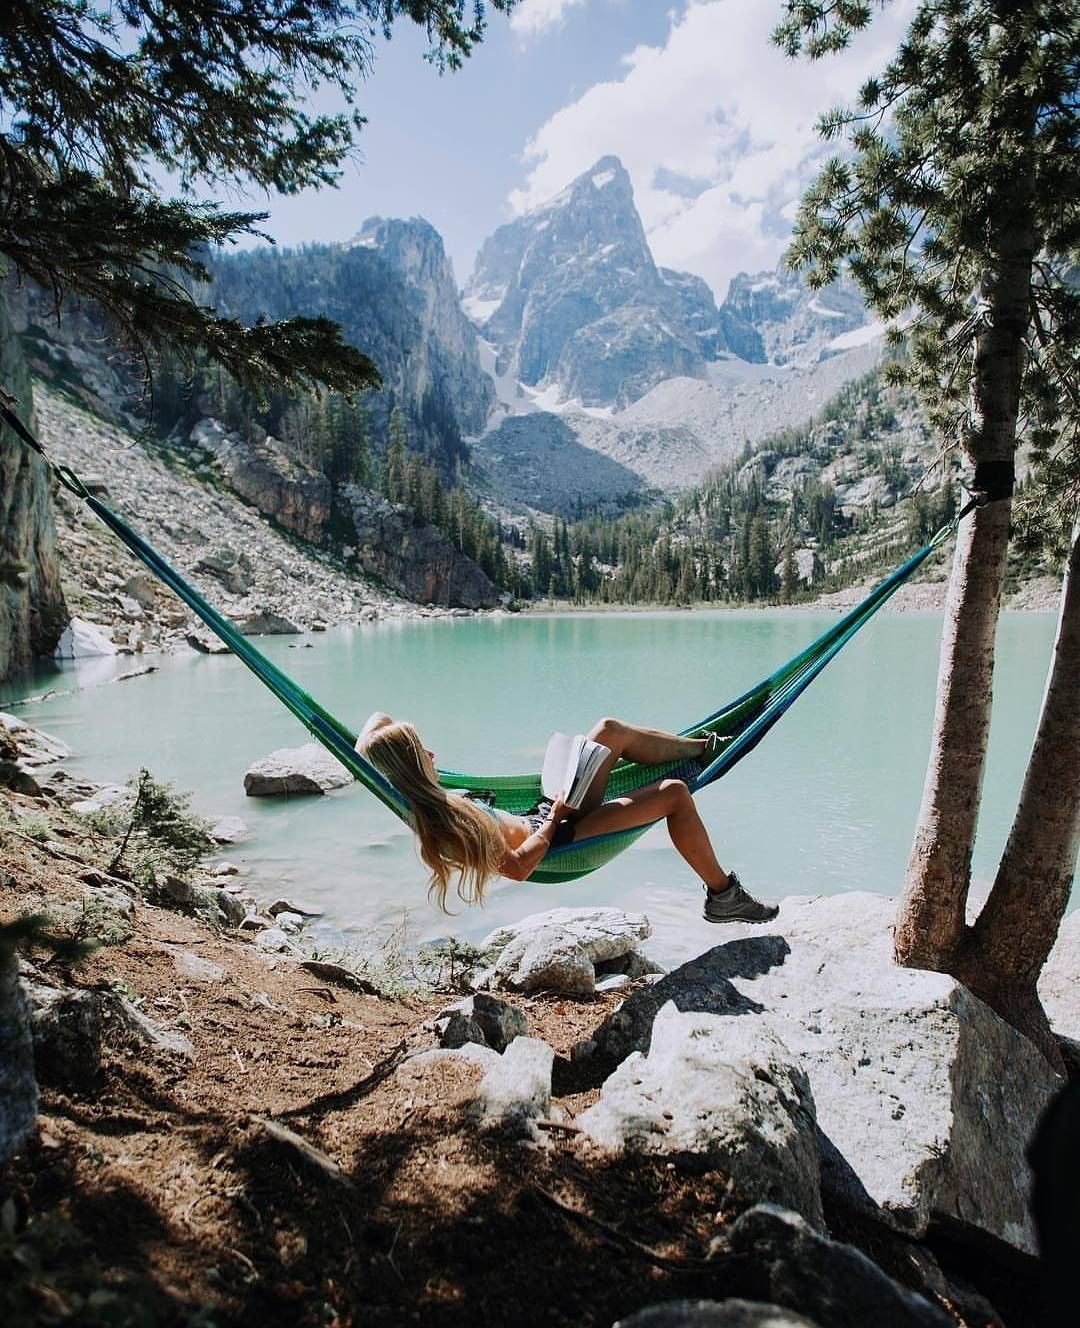 The Best Backcountry Camping and Hiking Hammocks